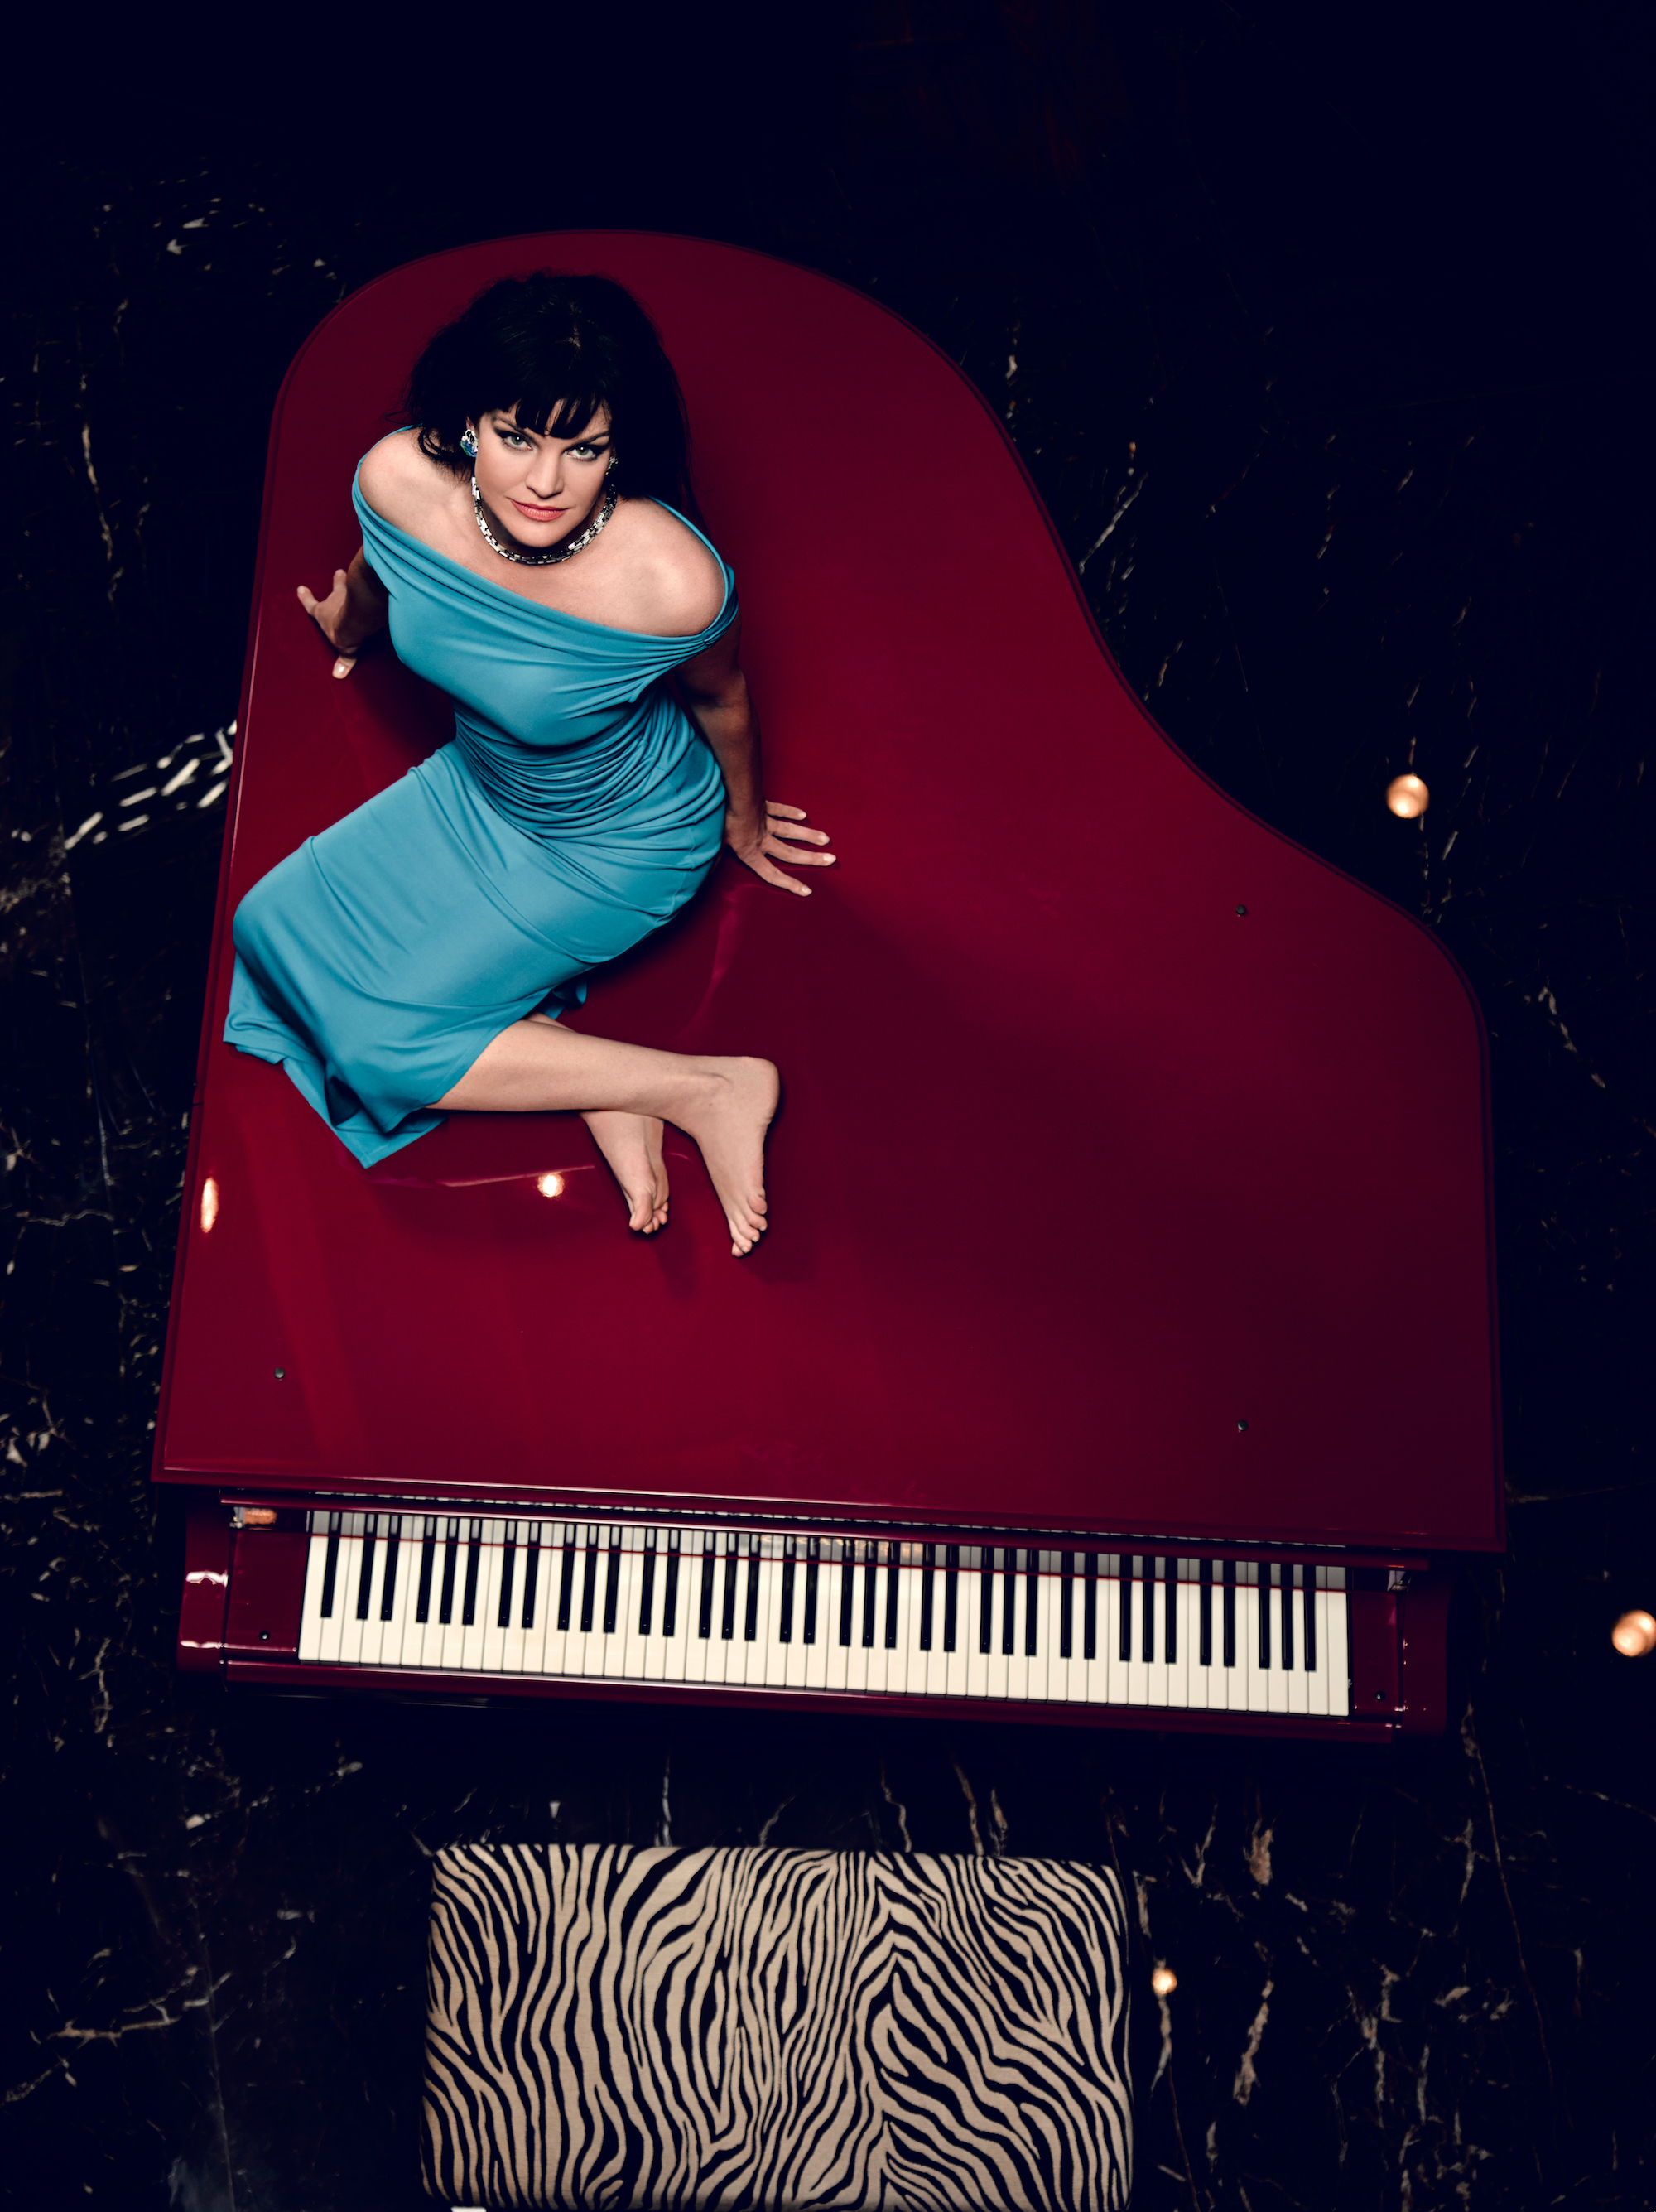 Pauley poses on a piano